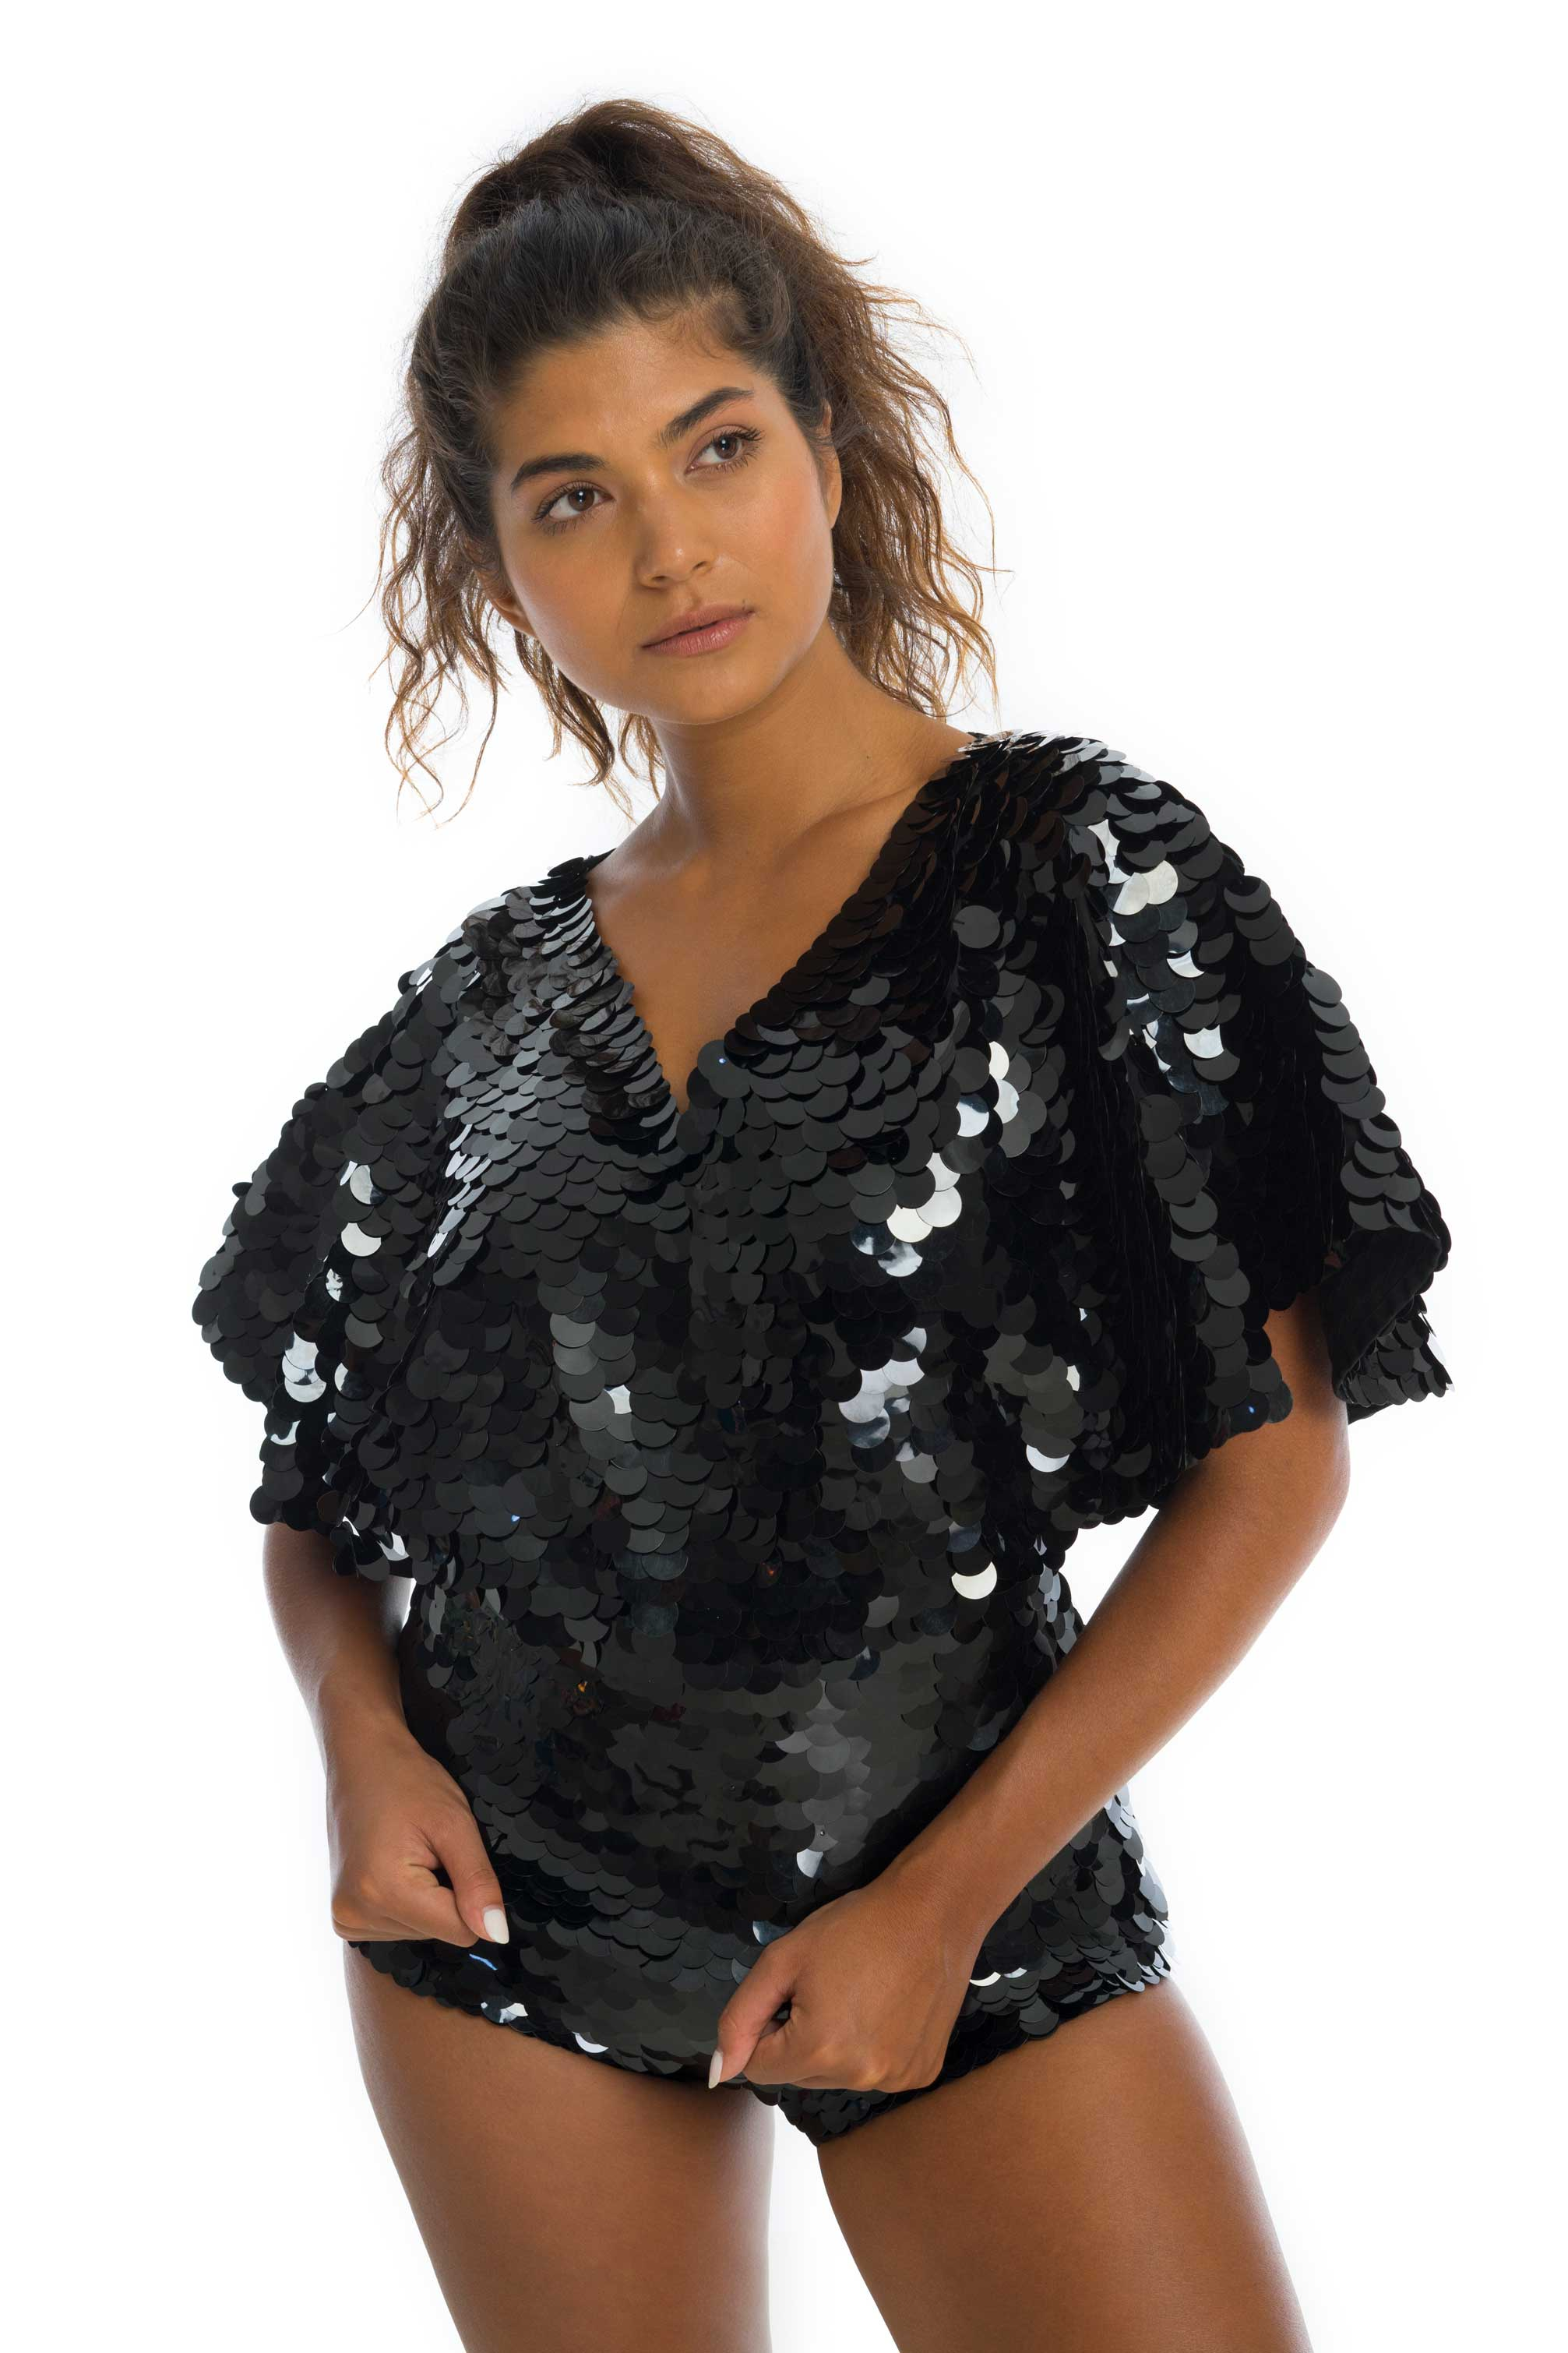 rosa bloom florence cape sleeve top black sequins festival party